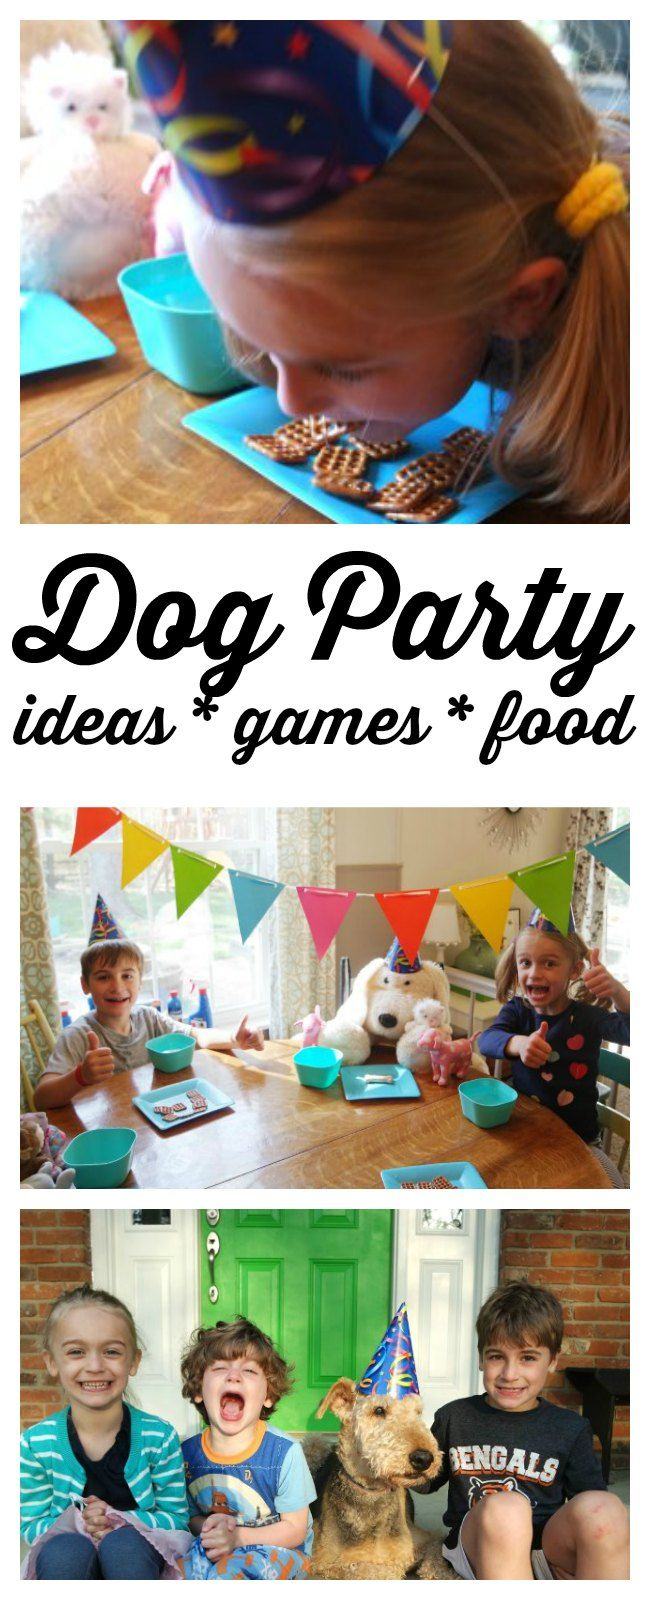 Planning a dog party? I'm sharing my favorite dog party ideas - including dog party games, the best dog party food, dog party decorations and (of course) the best dog party gifts! Great ideas for puppy and dog parties. StartSmart ad